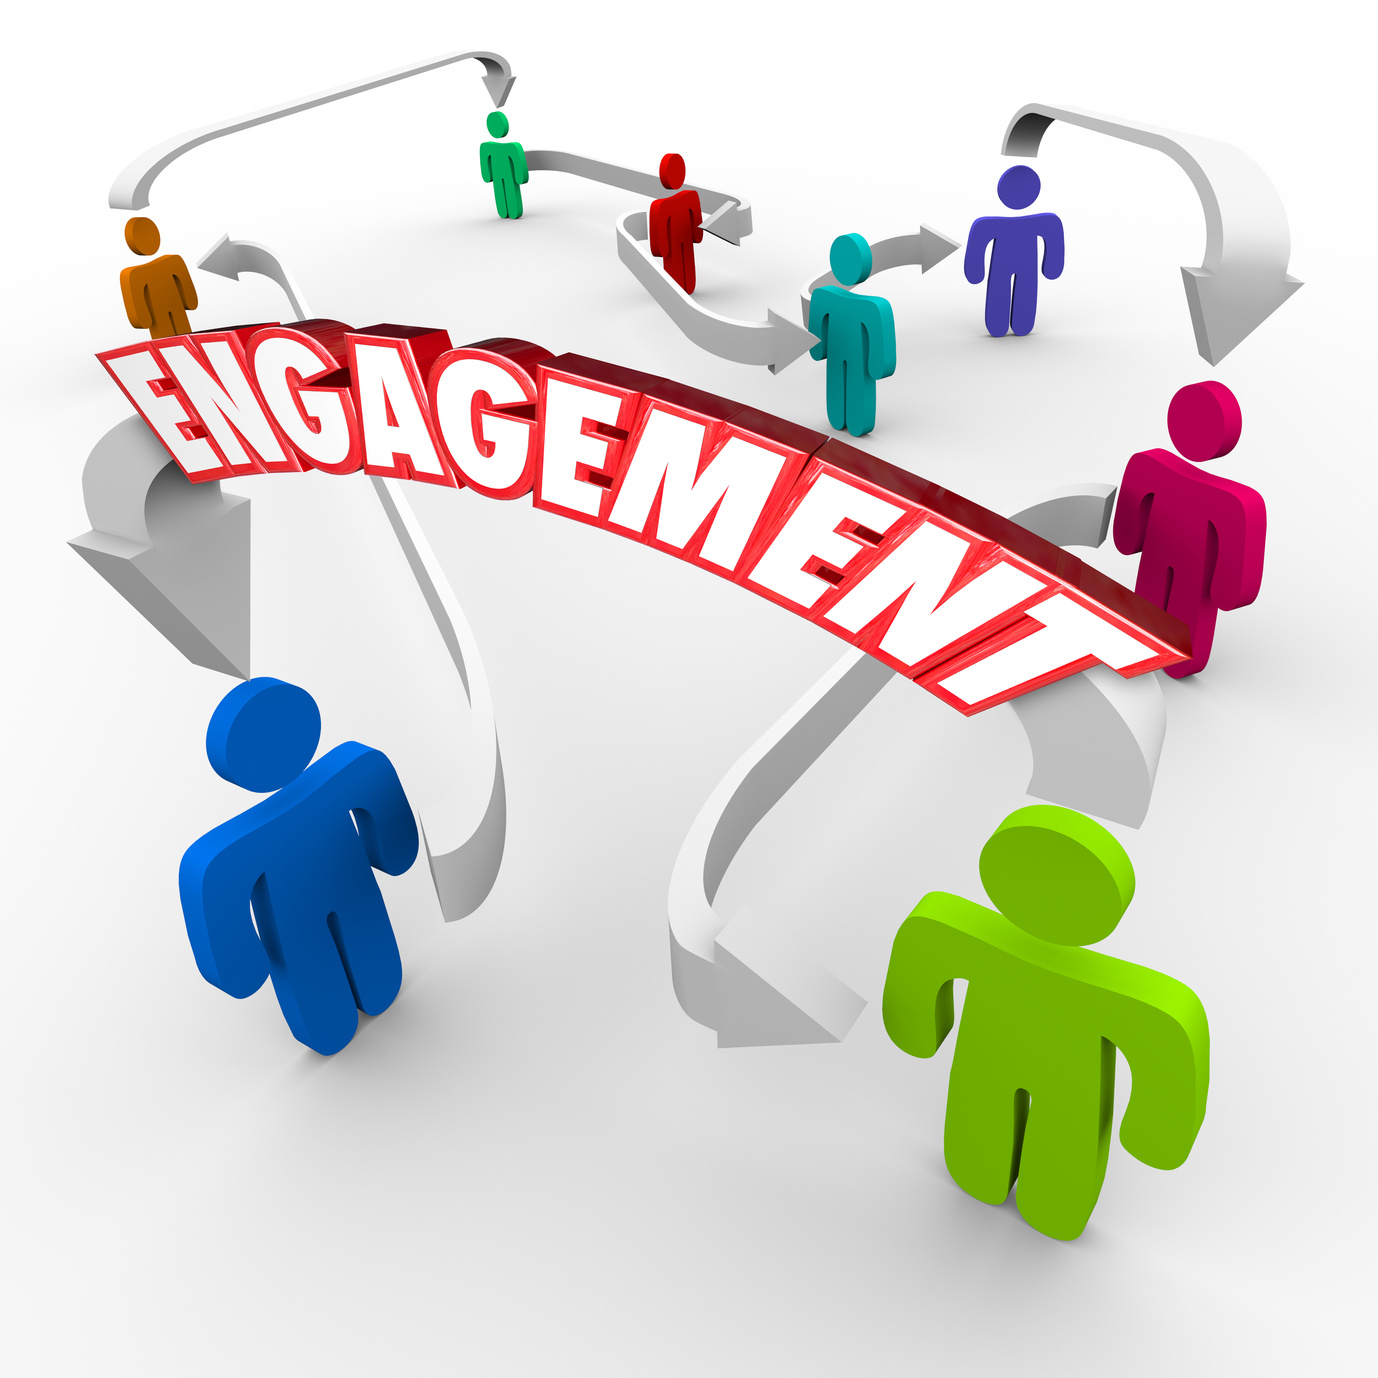 Engagement: The New Competitive Edge